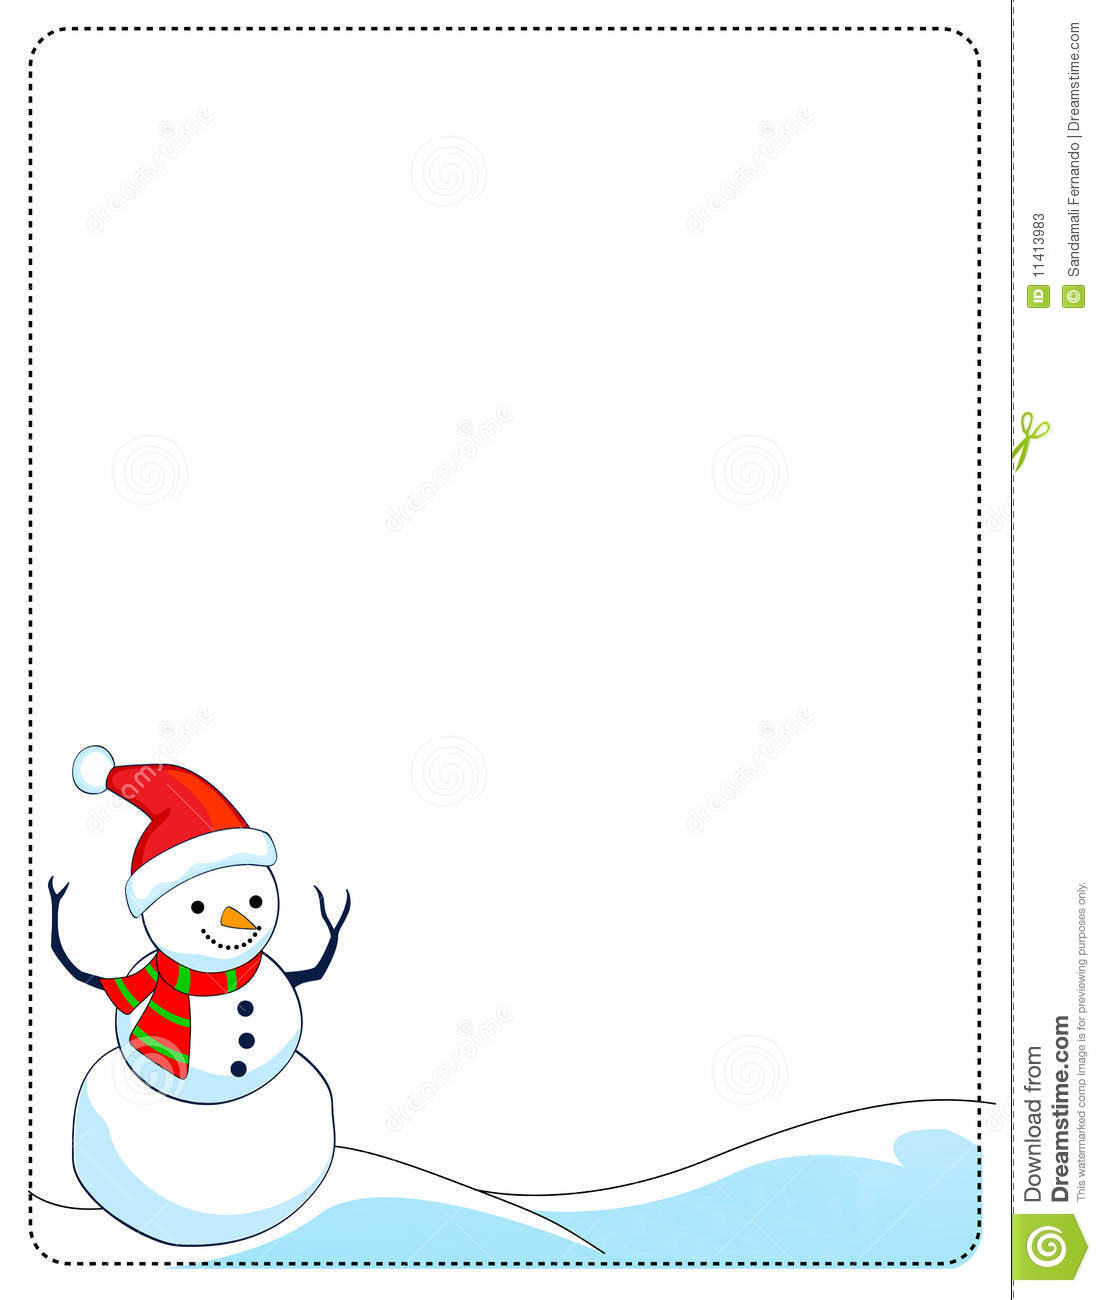 border illustration featuring a smiling snowman on white background.